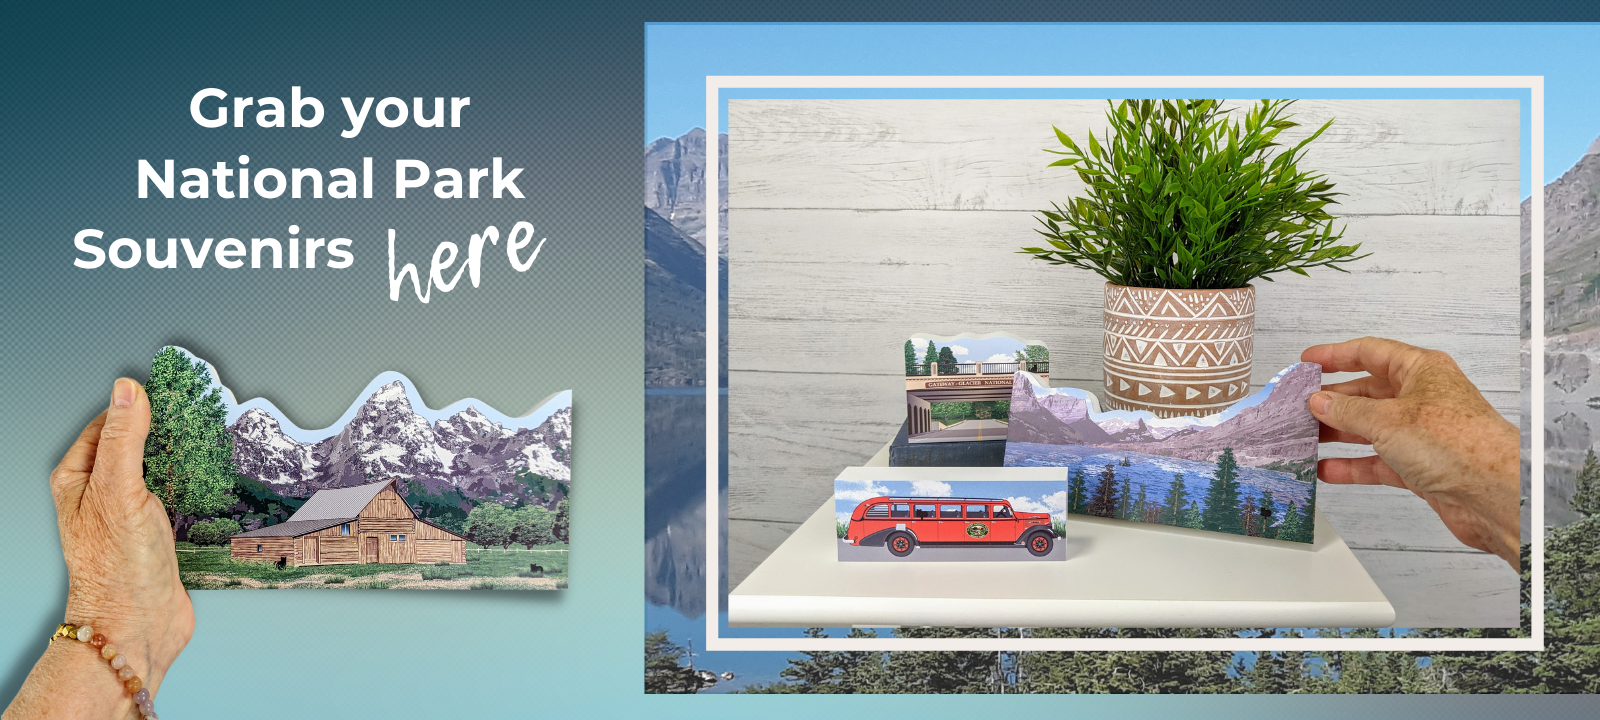 Grab up your National Park souvenirs here. Handcrafted by Cat's Meow Village in the USA.